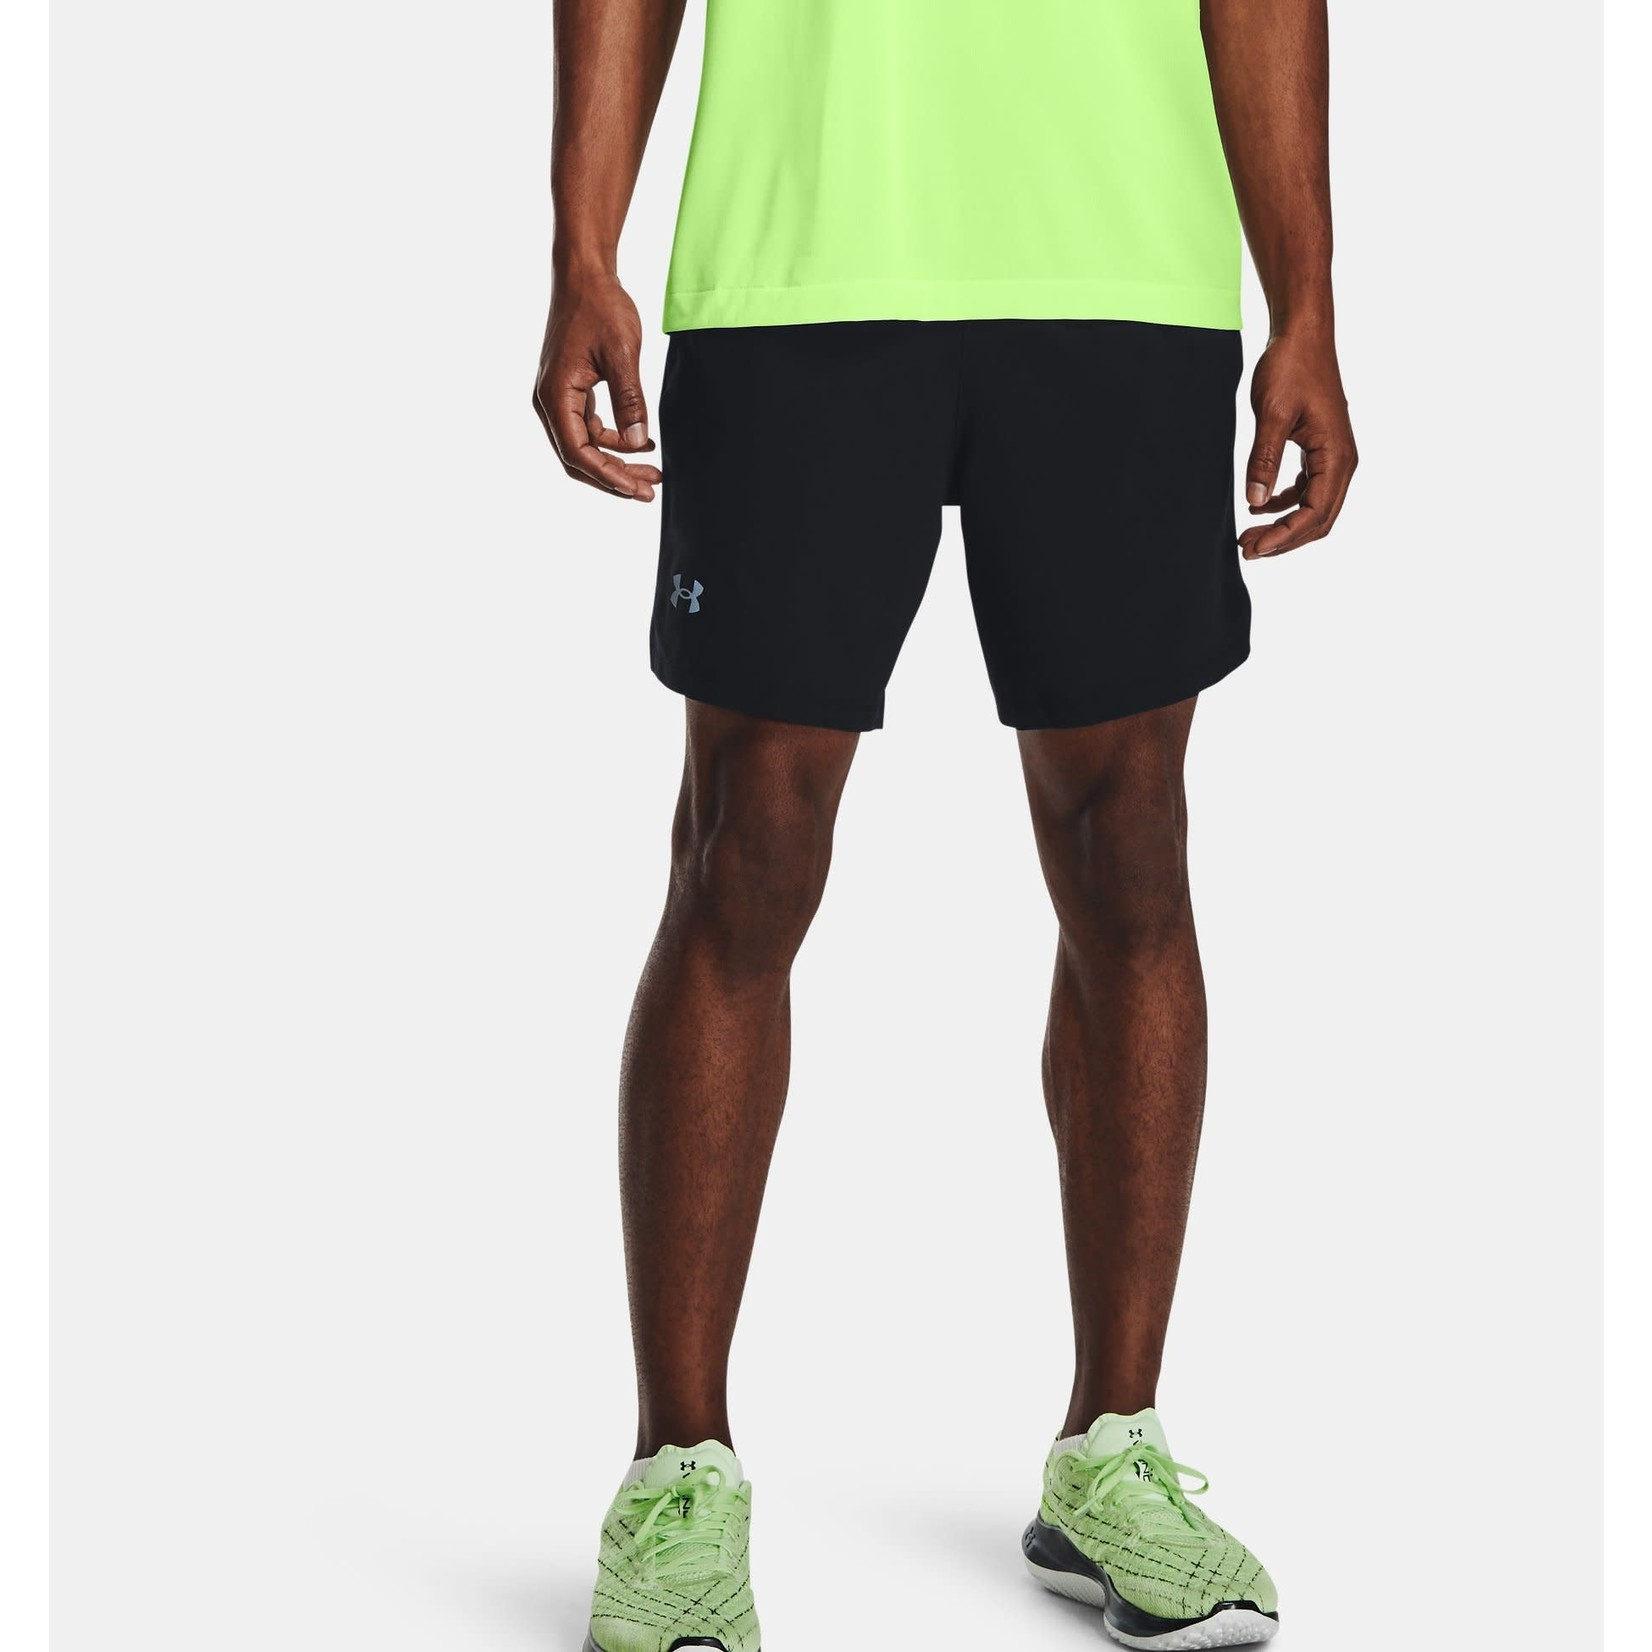 """Under Armour Under Armour 2-in-1 Shorts, Launch SW 7"""" 2N1, Mens"""